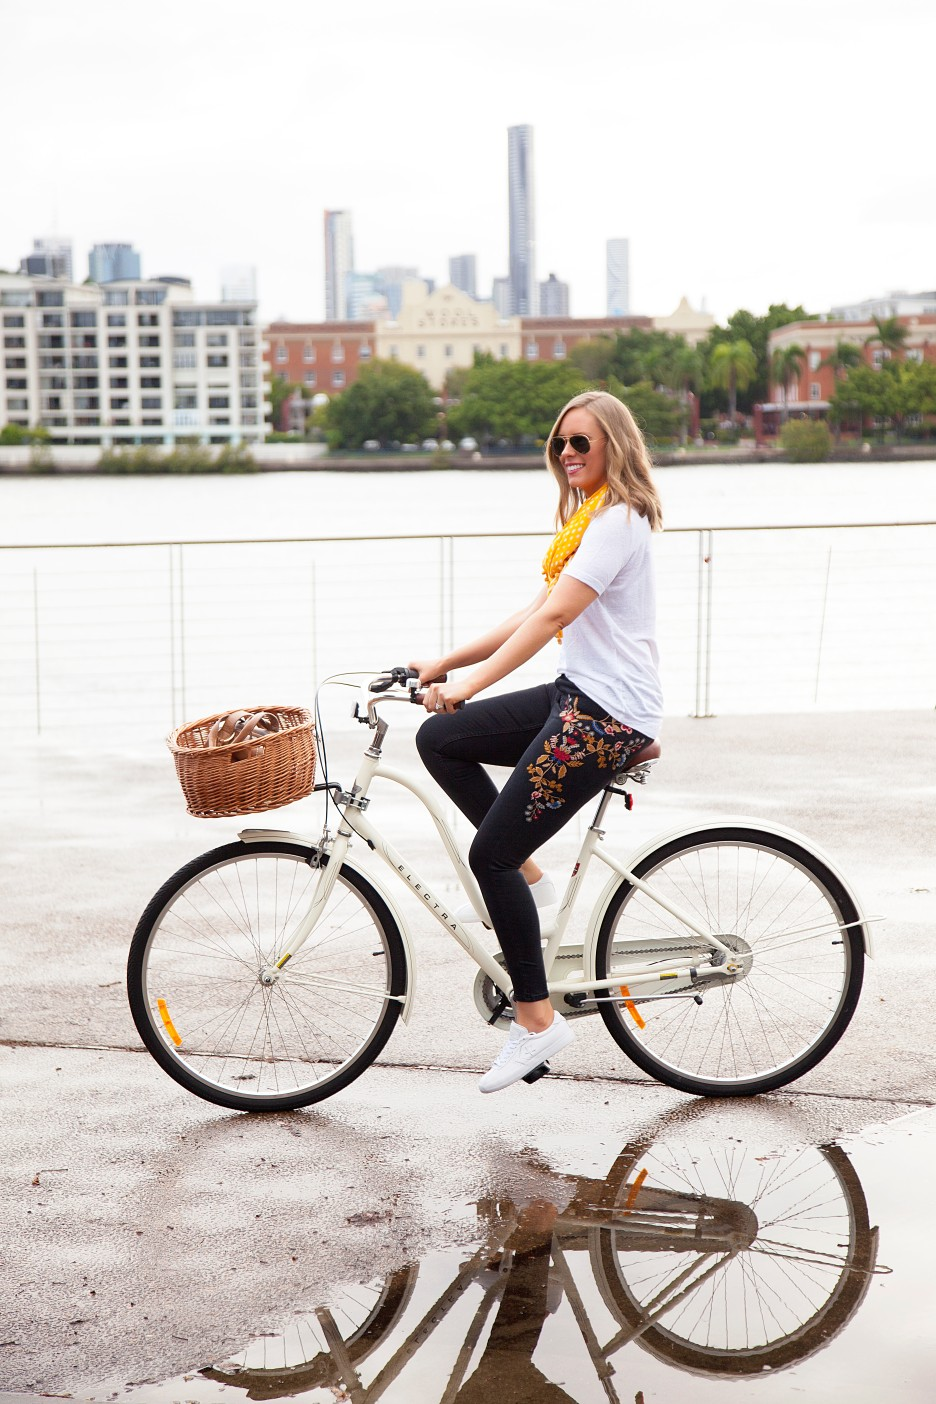 casual outfit ideas embroidered jeans and white tee marigold trend fashion blogger cute cream bike with basket electra cruiser bike lauren slade style elixir blog 7